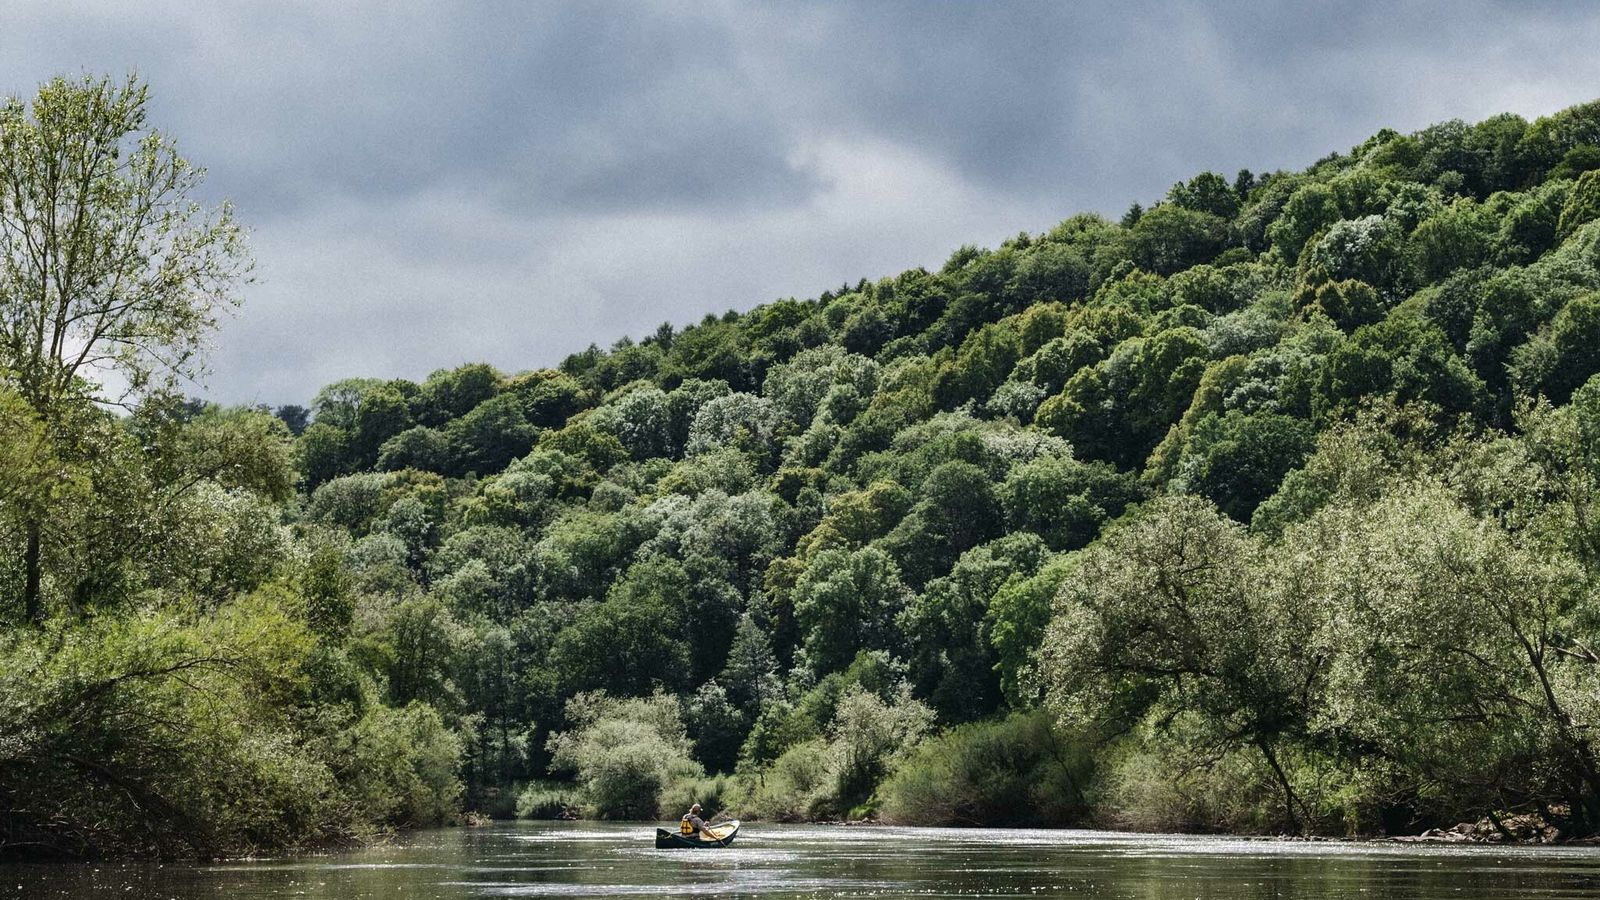 Canoeing on the River Wye near Welsh Bicknor with Stuart Wyley of Wye Canoes.